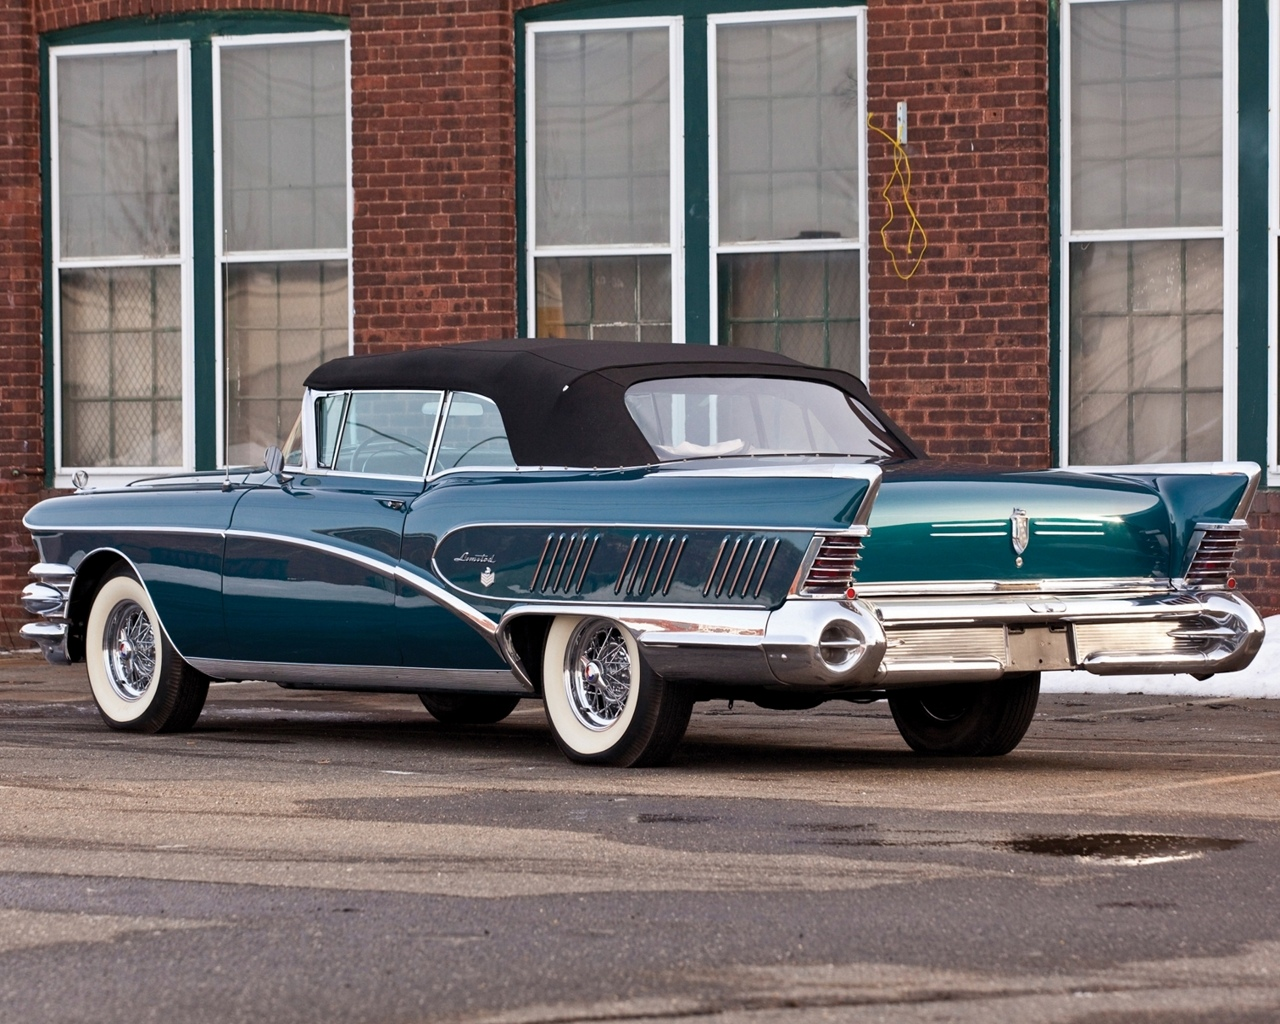 Hd wallpapers 2012 american classic cars wallpapers for Old american cars